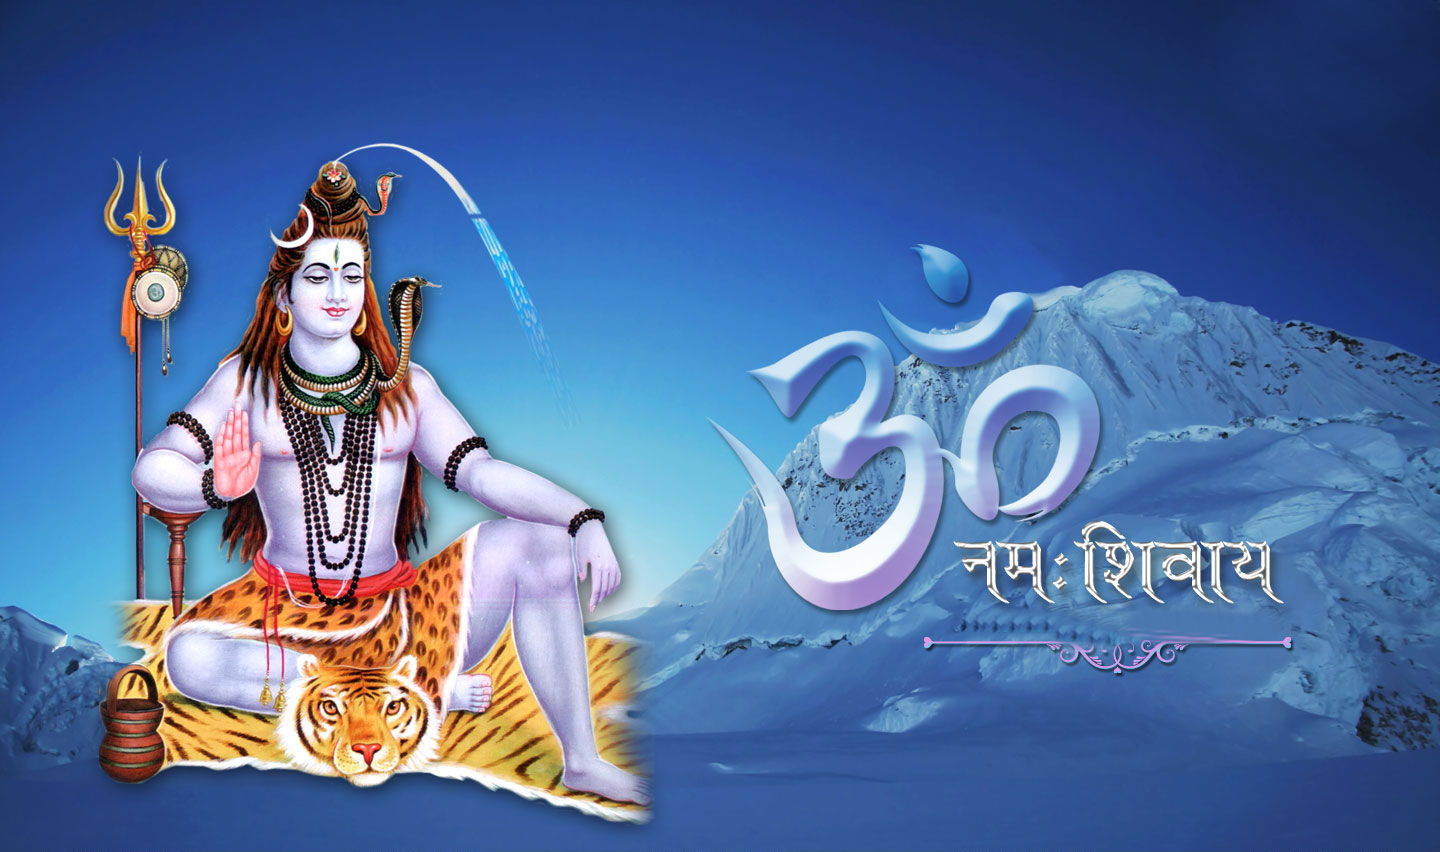 Shiva Wallpaper In Hd: Lord Shiva Wallpaper And Beautiful Images